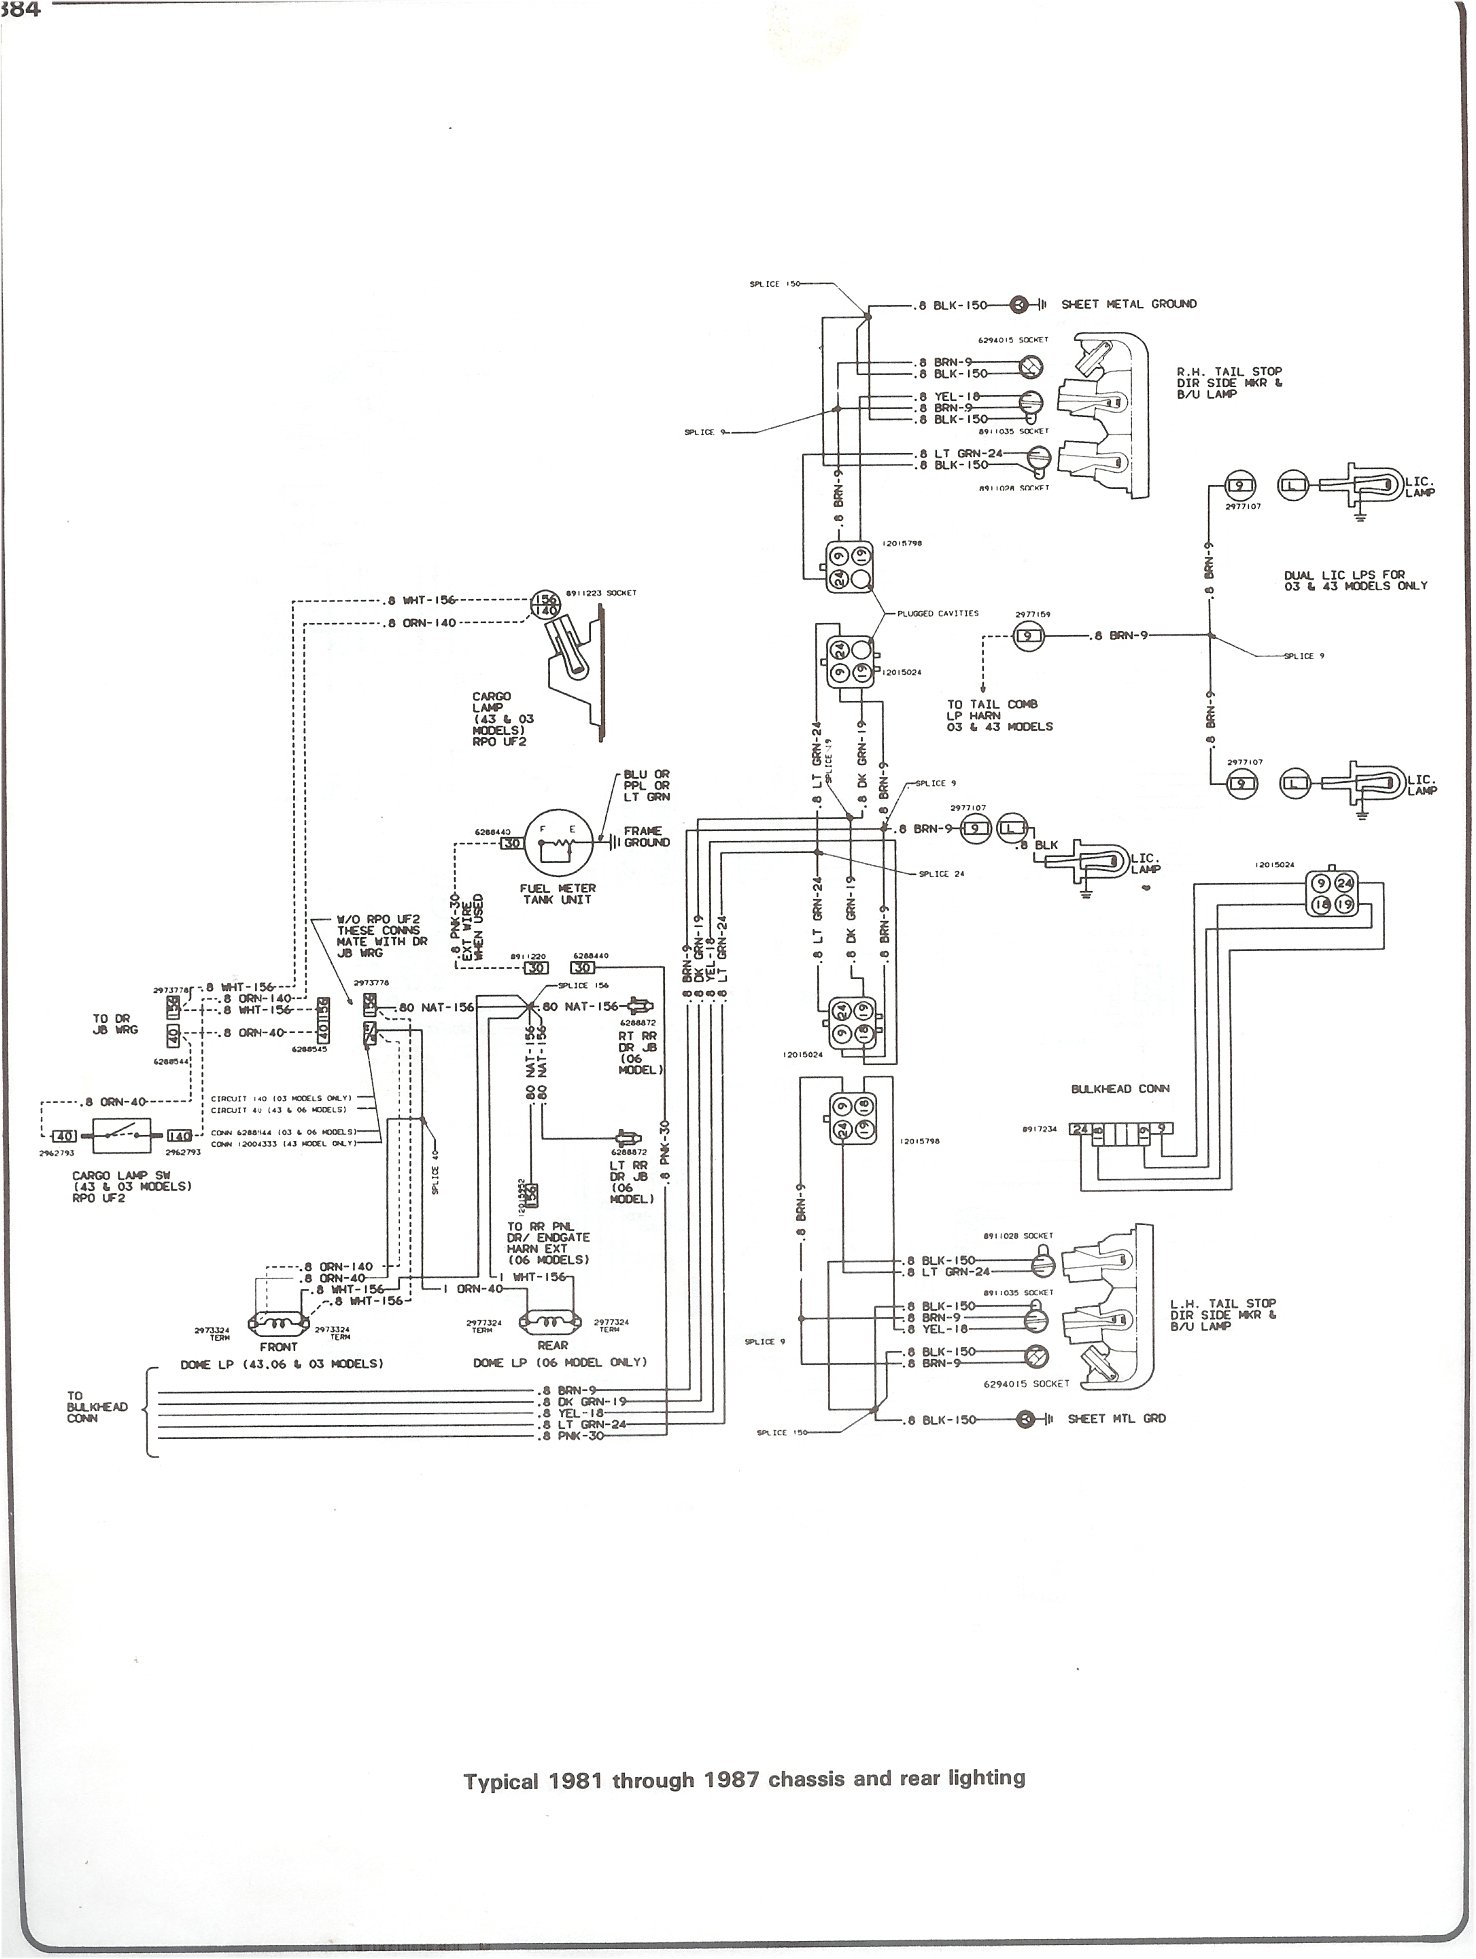 Underhood Wiring Diagram 85 Chevy Pickup Reinvent Your 2006 Polaris Sportsman 450 Fuse Box Complete 73 87 Diagrams Rh Forum 87chevytrucks Com 1978 Truck